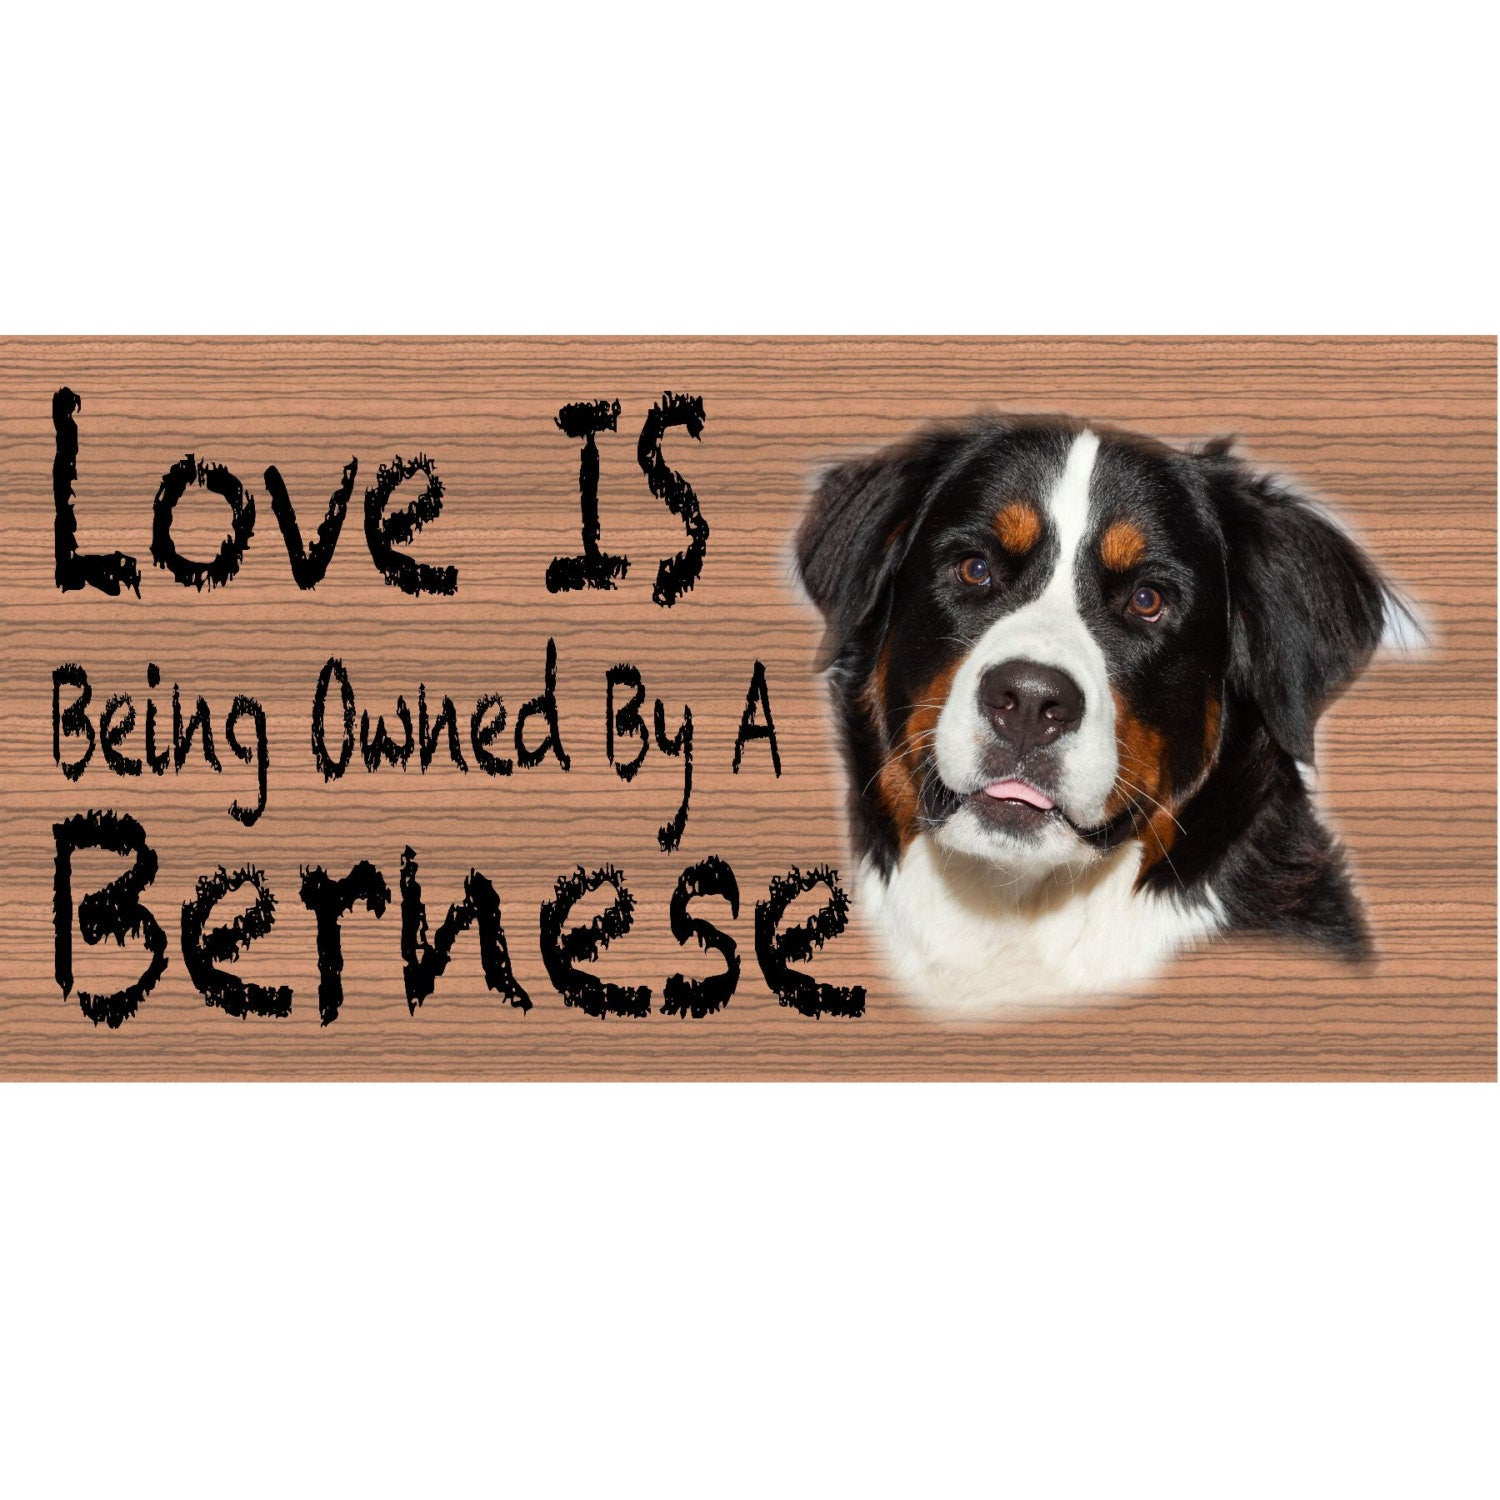 Bernese Dog Wood Signs - Bernese GS 428 - Dog Plaque